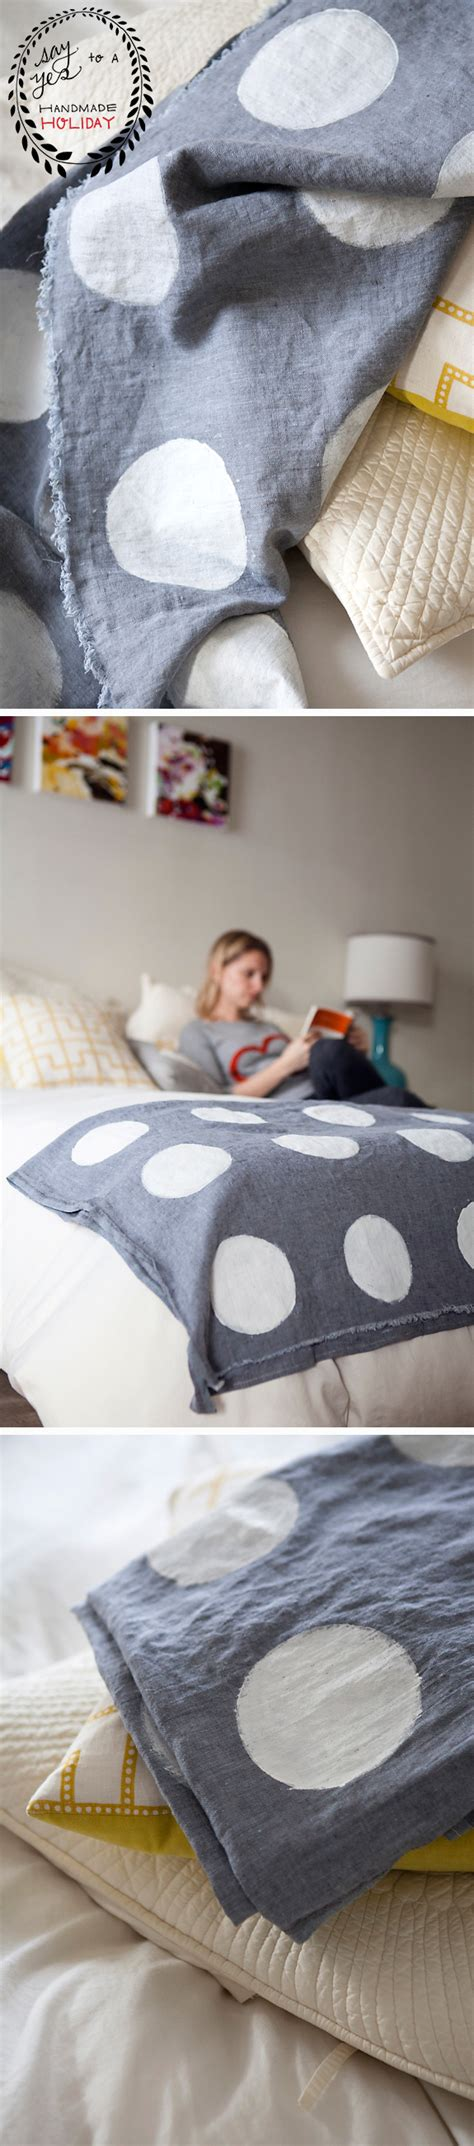 diy coverlet diy hand sted polka dot coverlet say yes